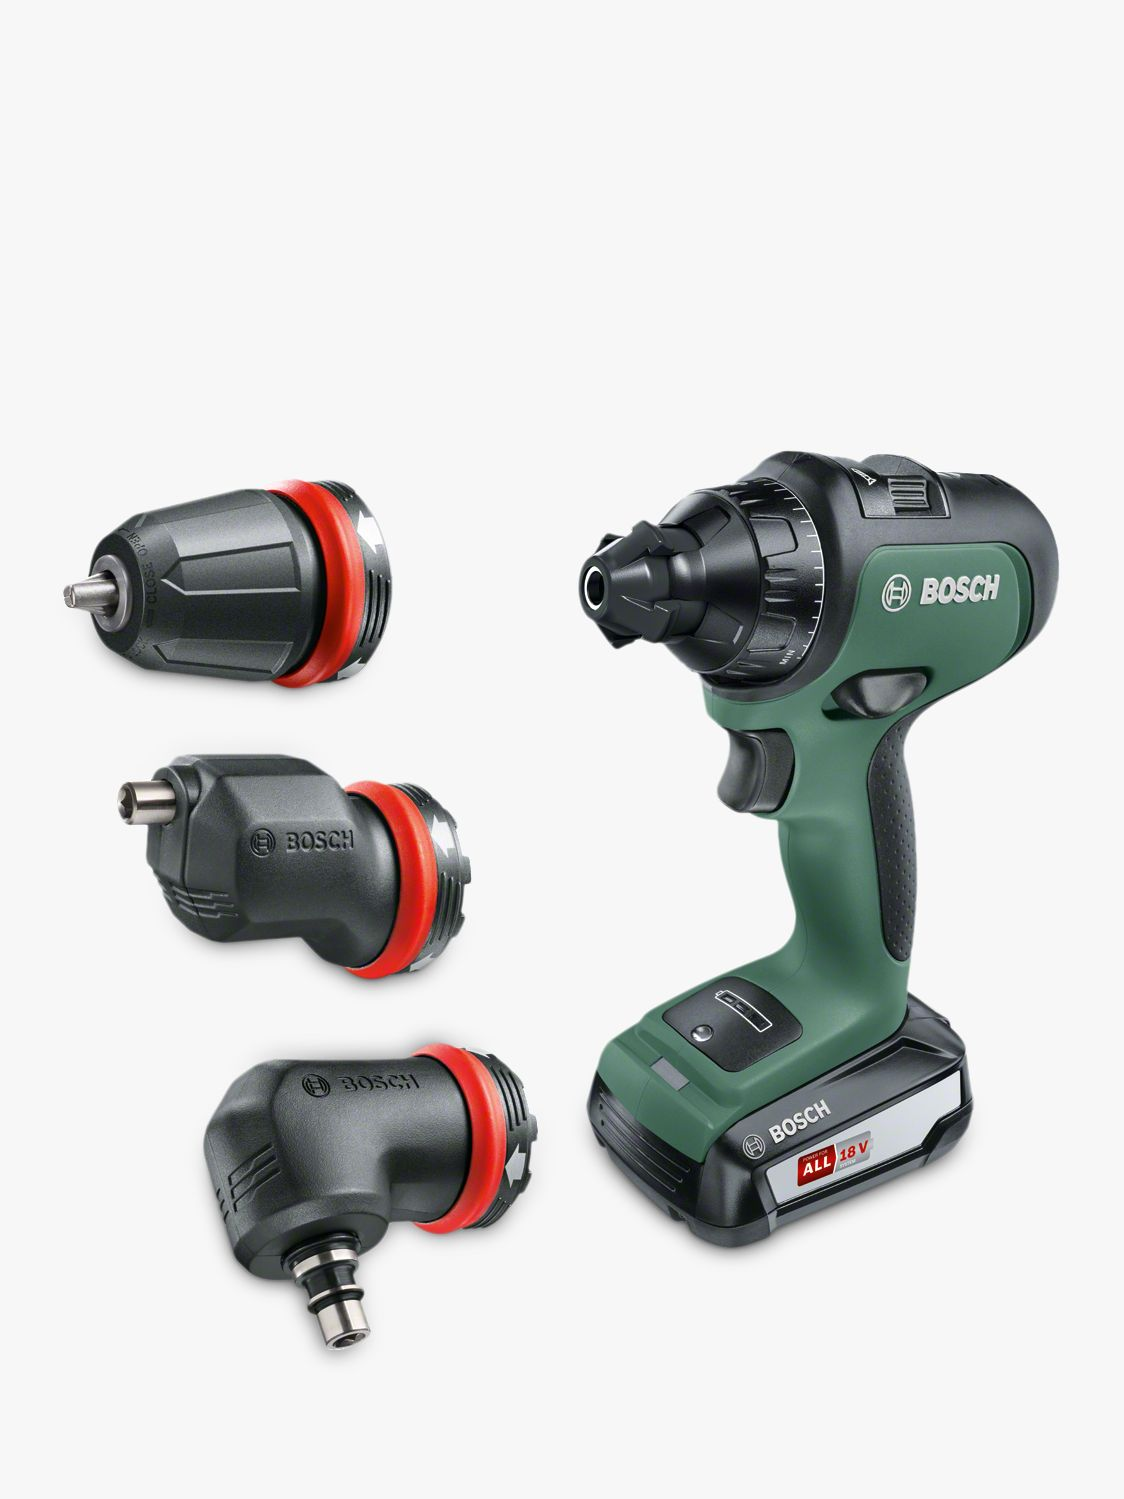 Bosch Bosch AdvancedImpact18 Cordless Two-speed Combi Electric Drill